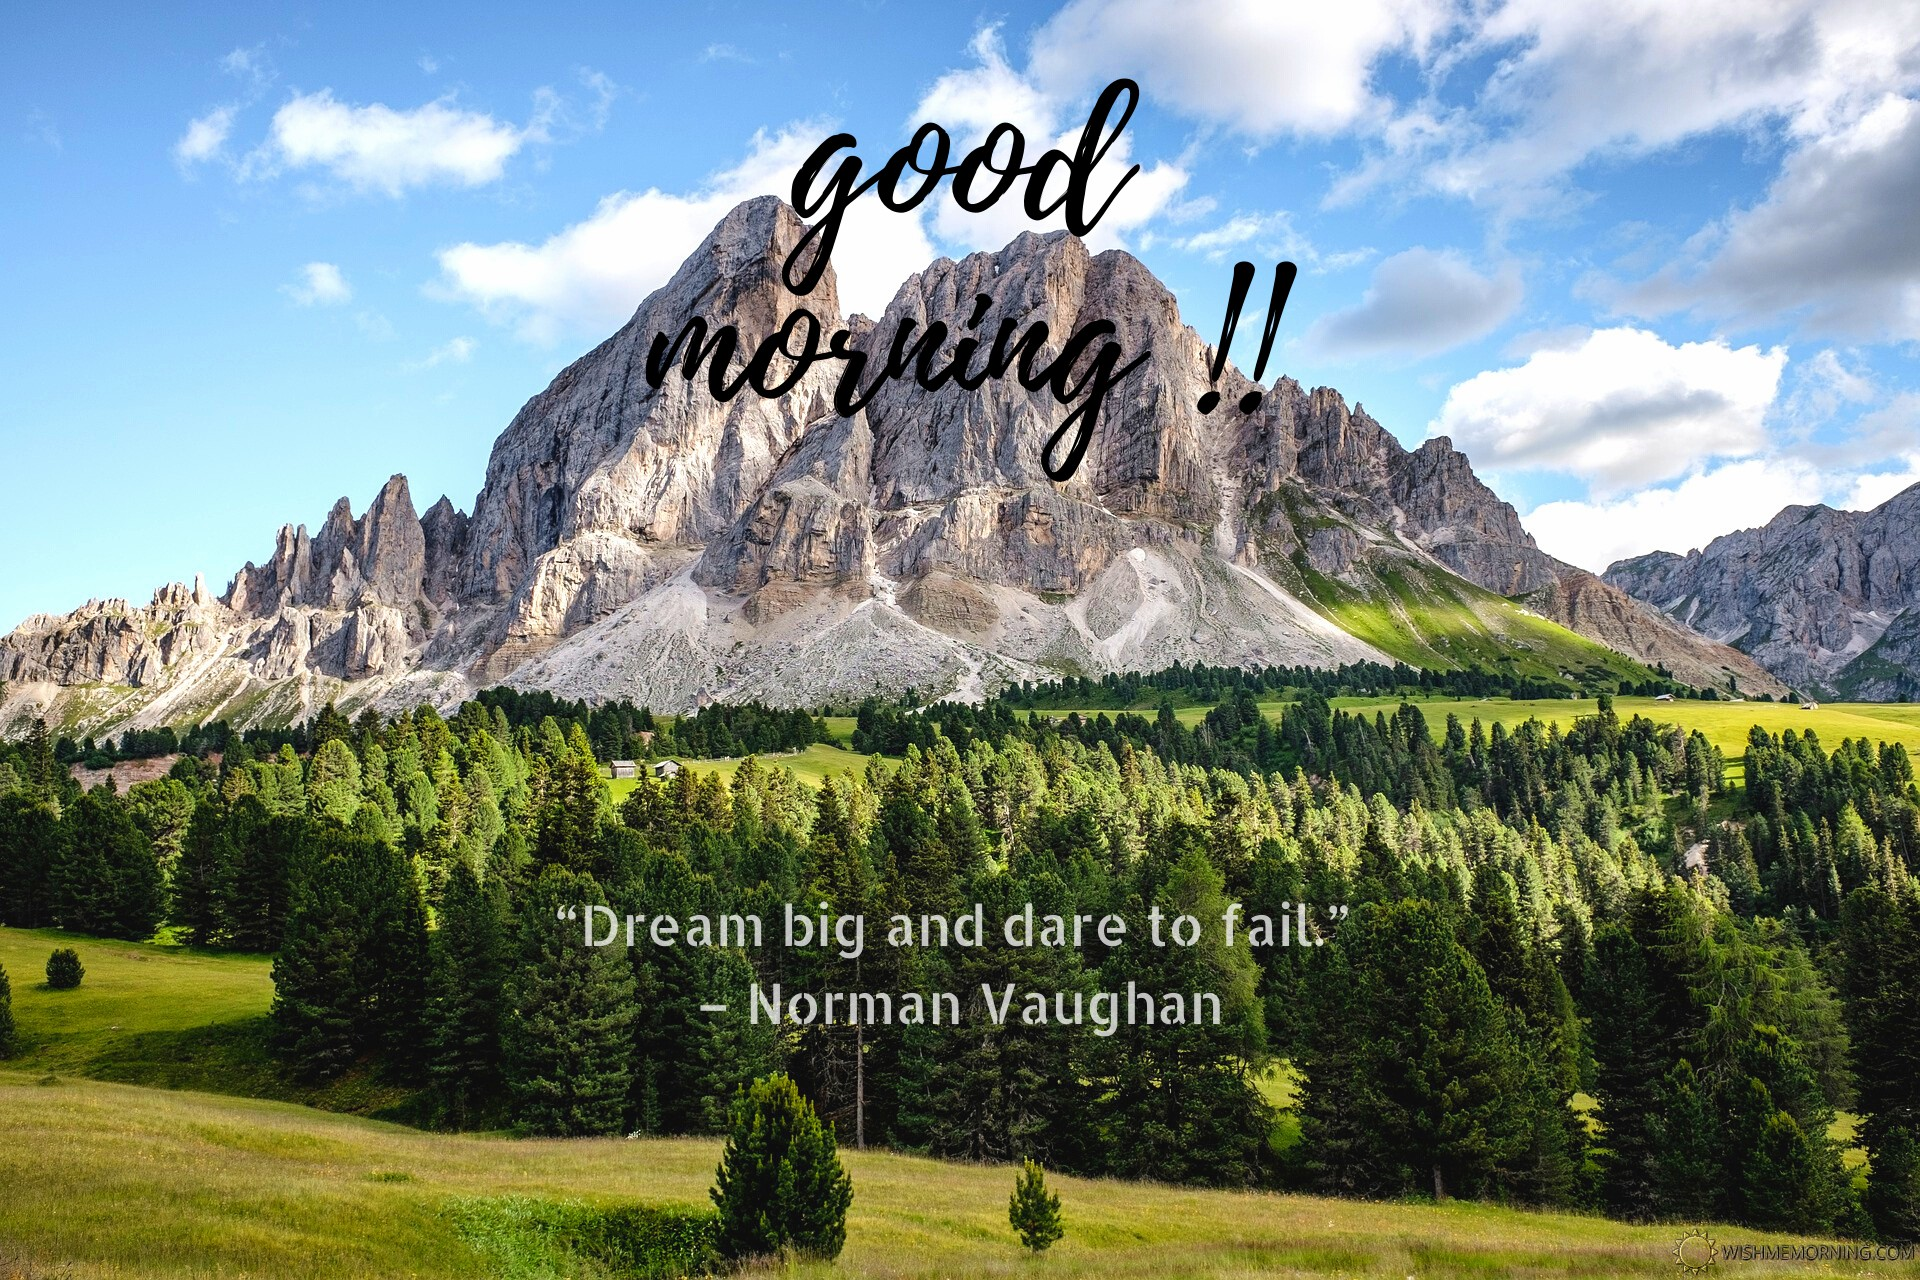 Green Trees With Gray Mountain Good Morning Photo Image